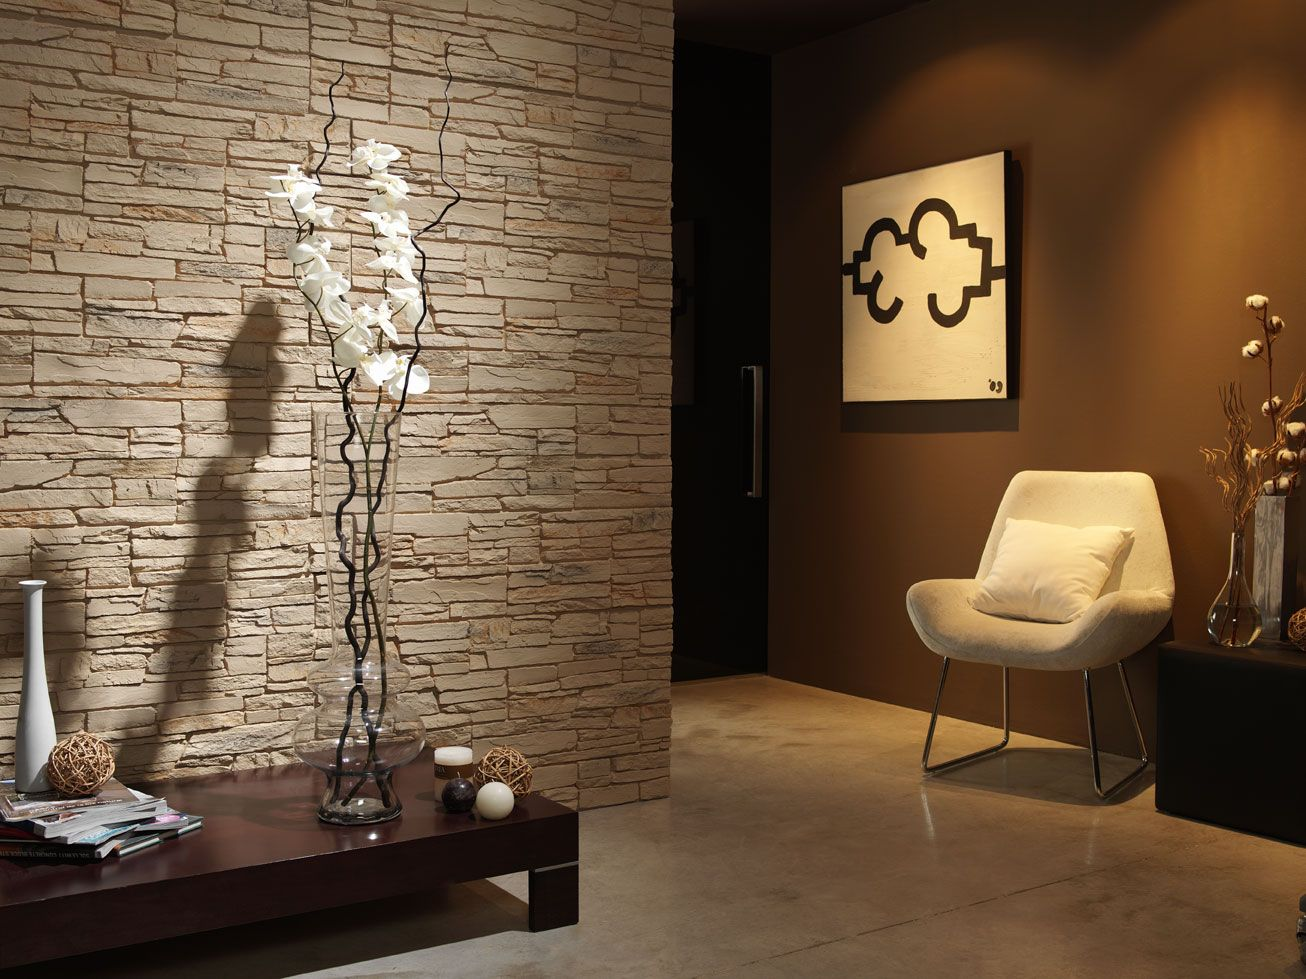 Decorative Wall Tiles Living Room Modern Minimalist Bathroom Vanity With Best Cool Backsplash Tile